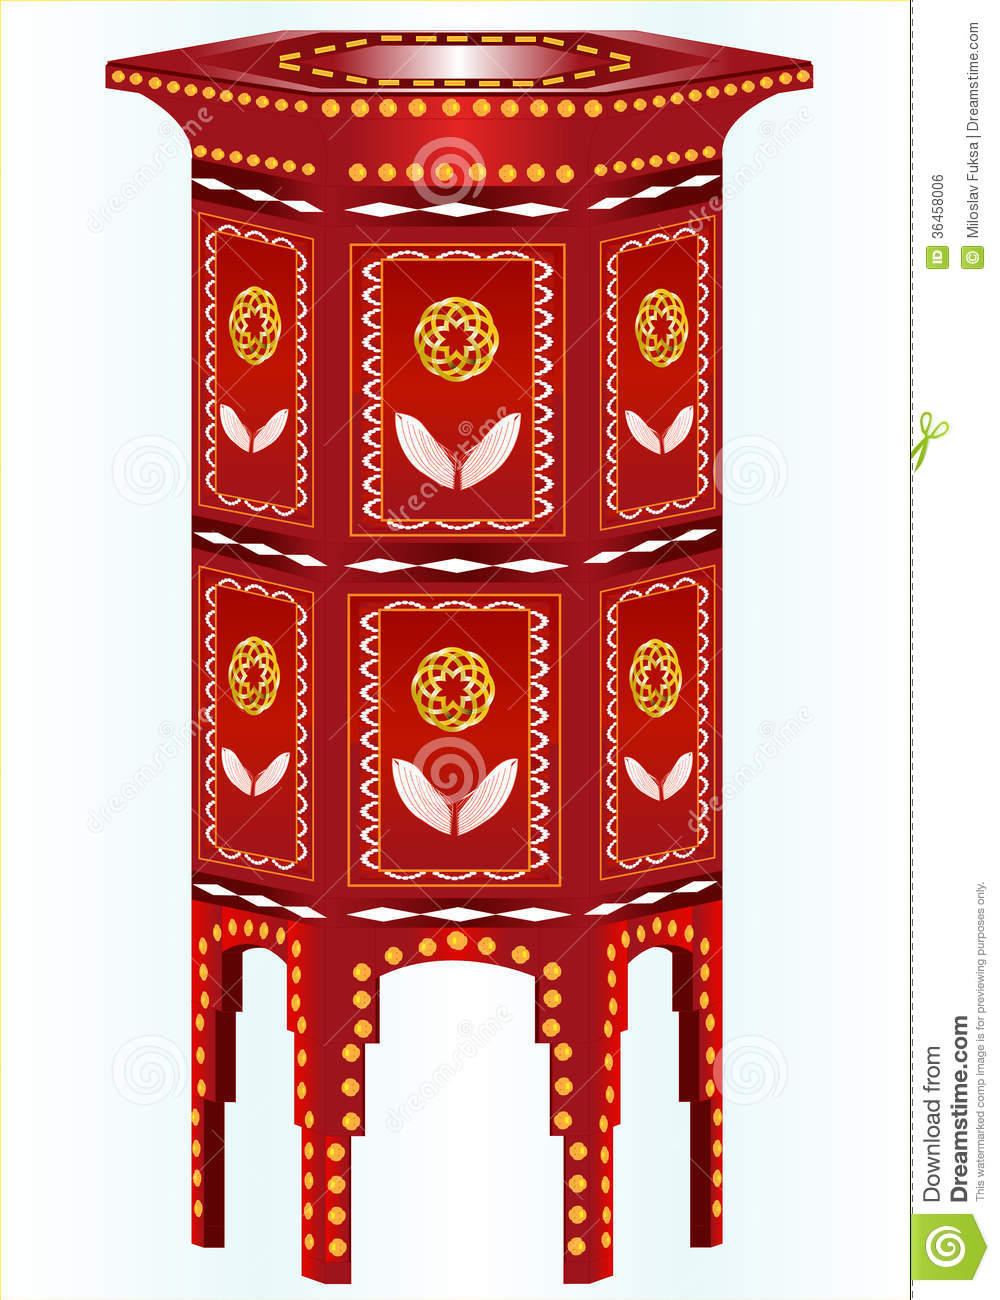 Hexagonal side table royalty free stock image image for Decoration table orientale